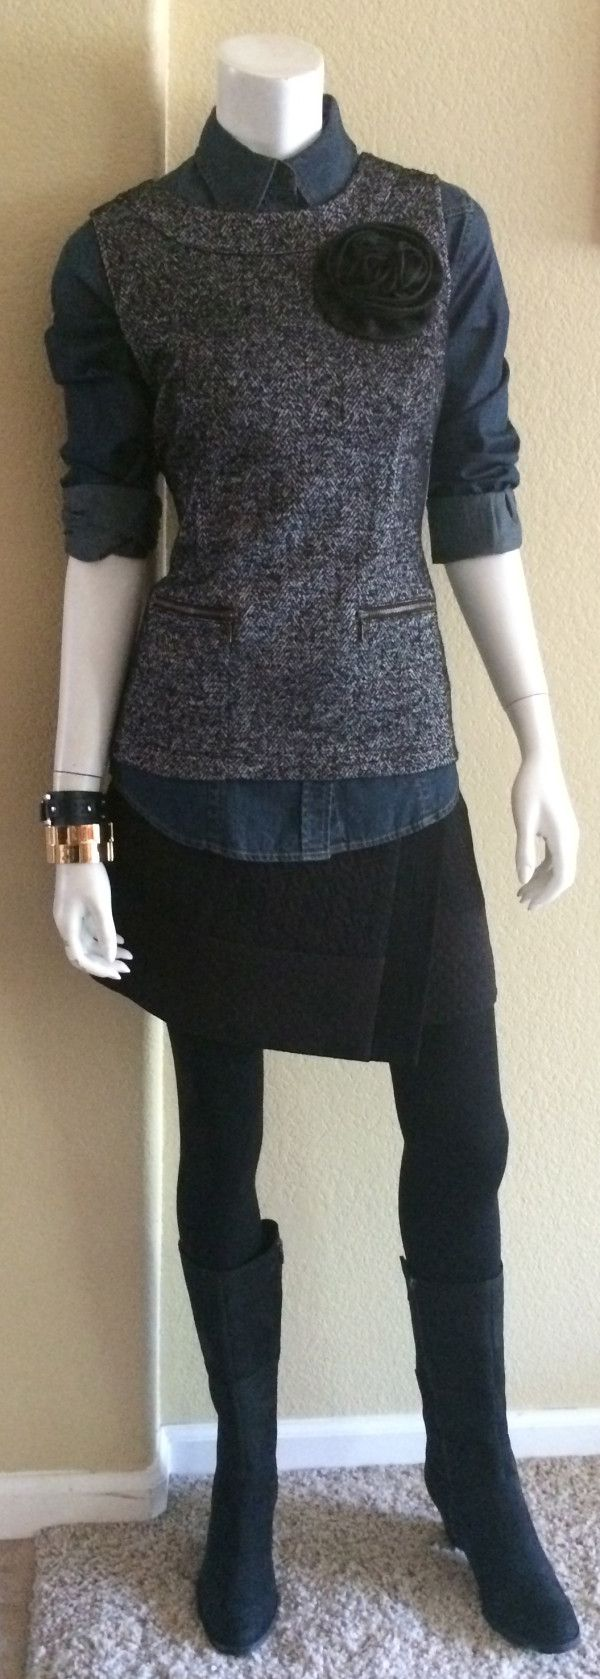 #STYLE IT! #CAbiClothing CAbi Fall '14 Swathe Skirt, McQueen Shirt, Cece Shell and Hardware Bangles with Fry boots and tights.